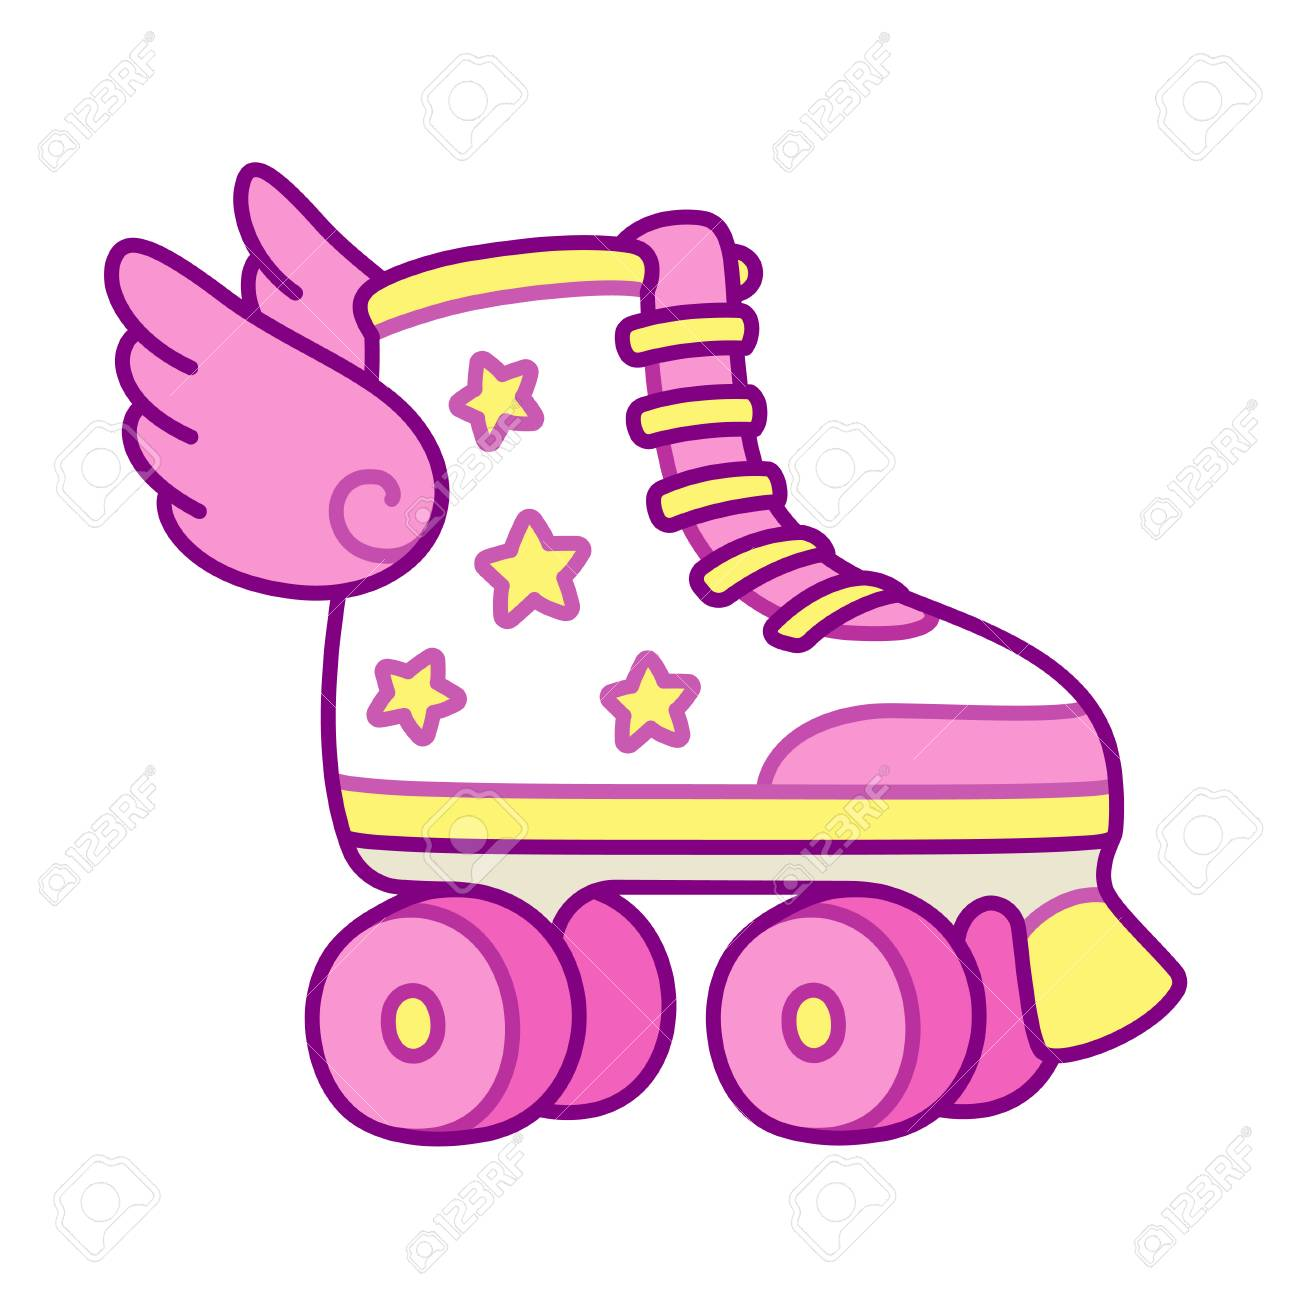 Cute pink girly roller skates with stars and wings. Retro quad rollers cartoon vector illustration